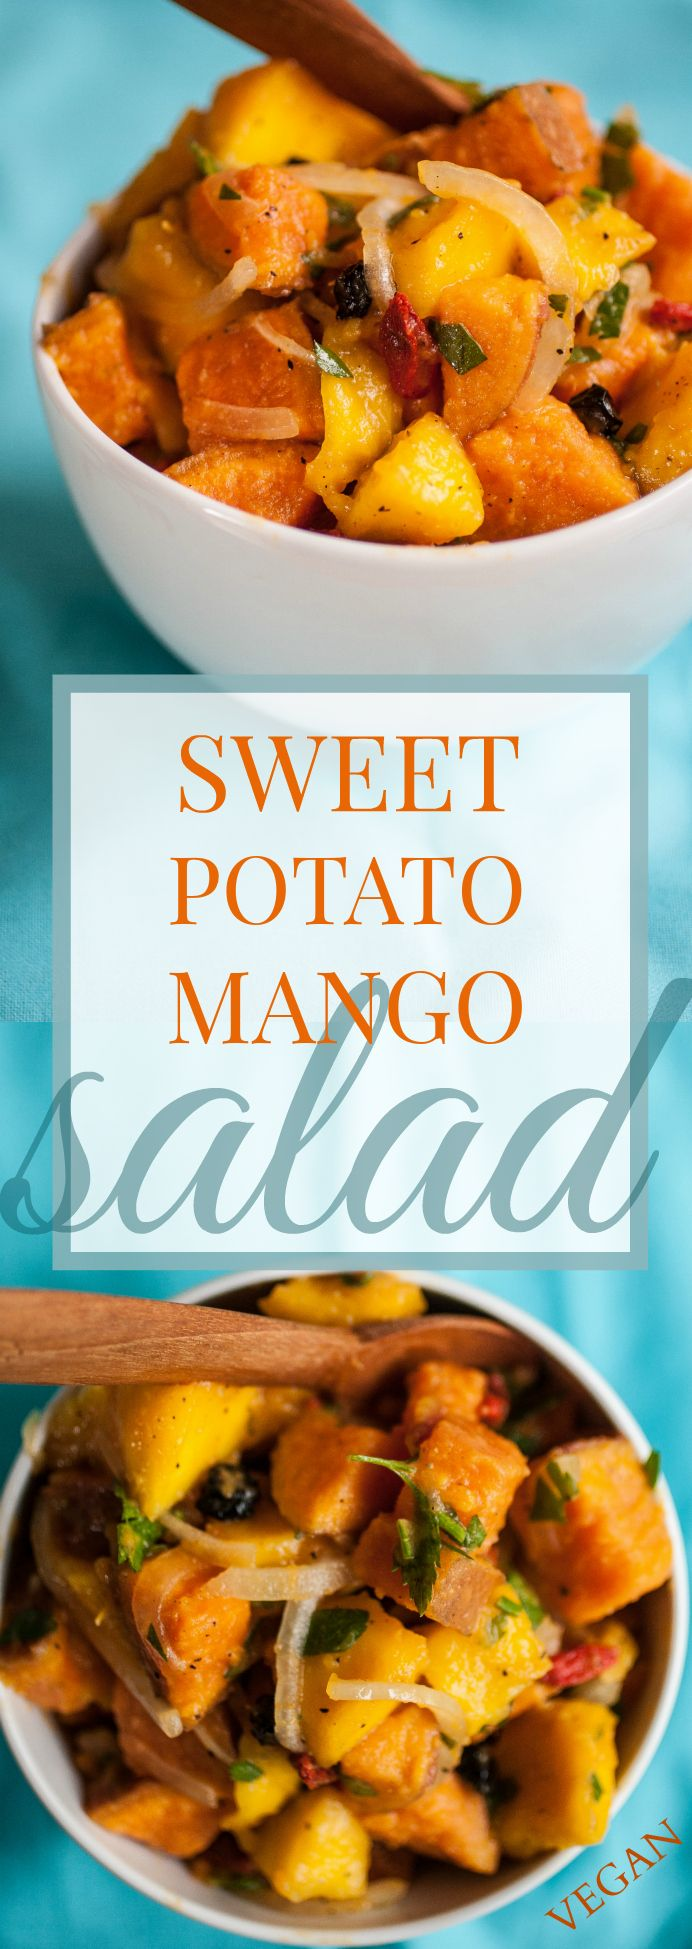 Produce On Parade - Sweet Potato Mango Salad - A delicious spin on regular potato salad. This sweet potato mango salad is studded with dried berries and dressed with lime juice and olive oil.